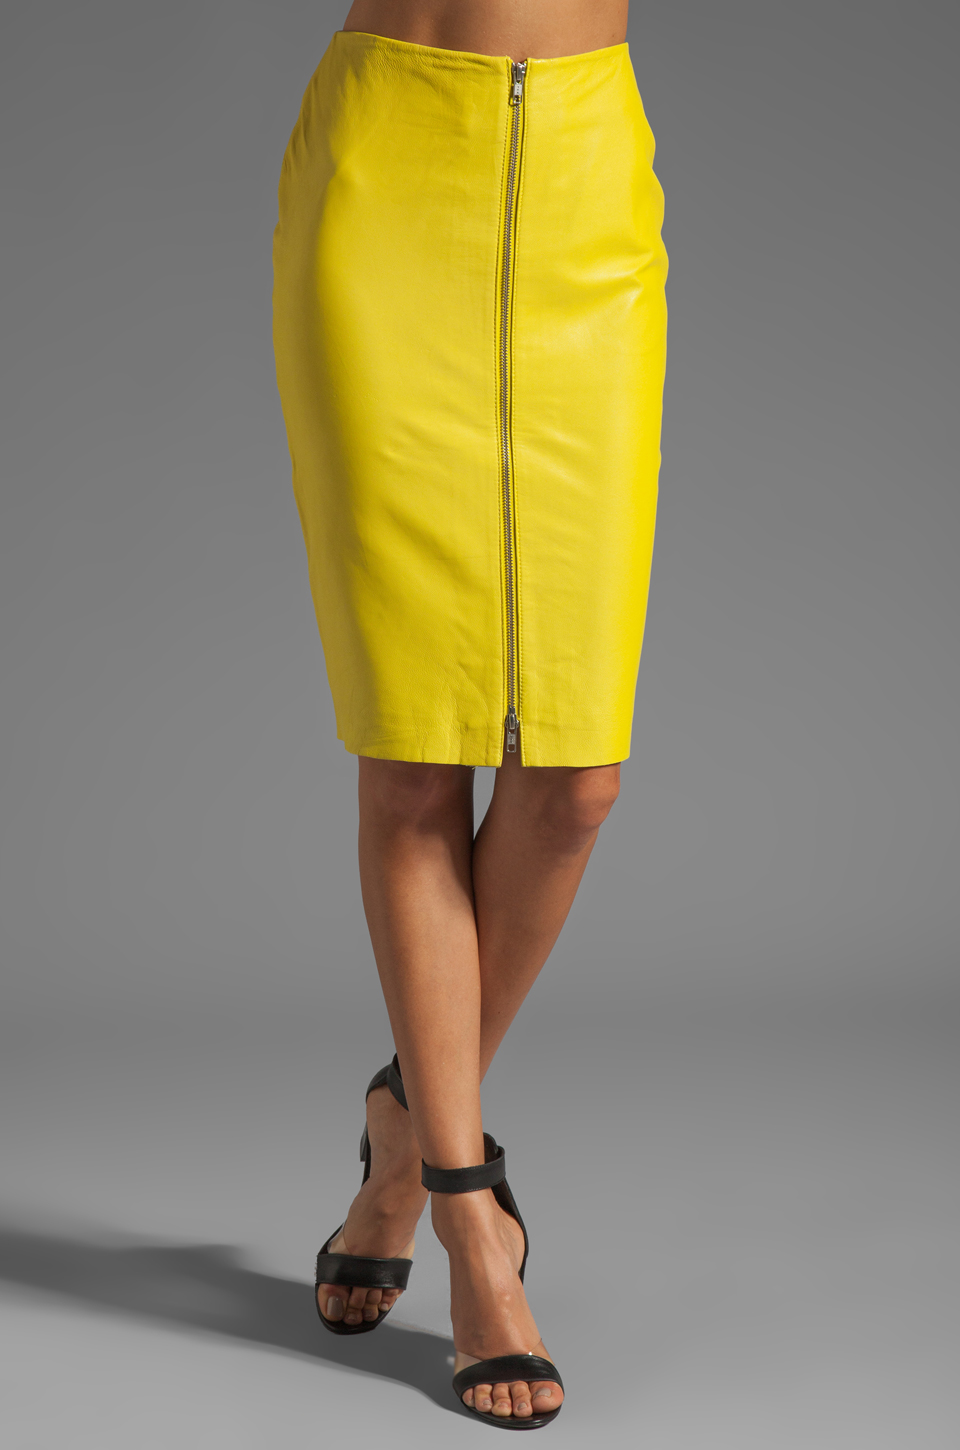 By Malene Birger Luxurious Leather Pencil Skirt in Neon Yellow | REVOLVE